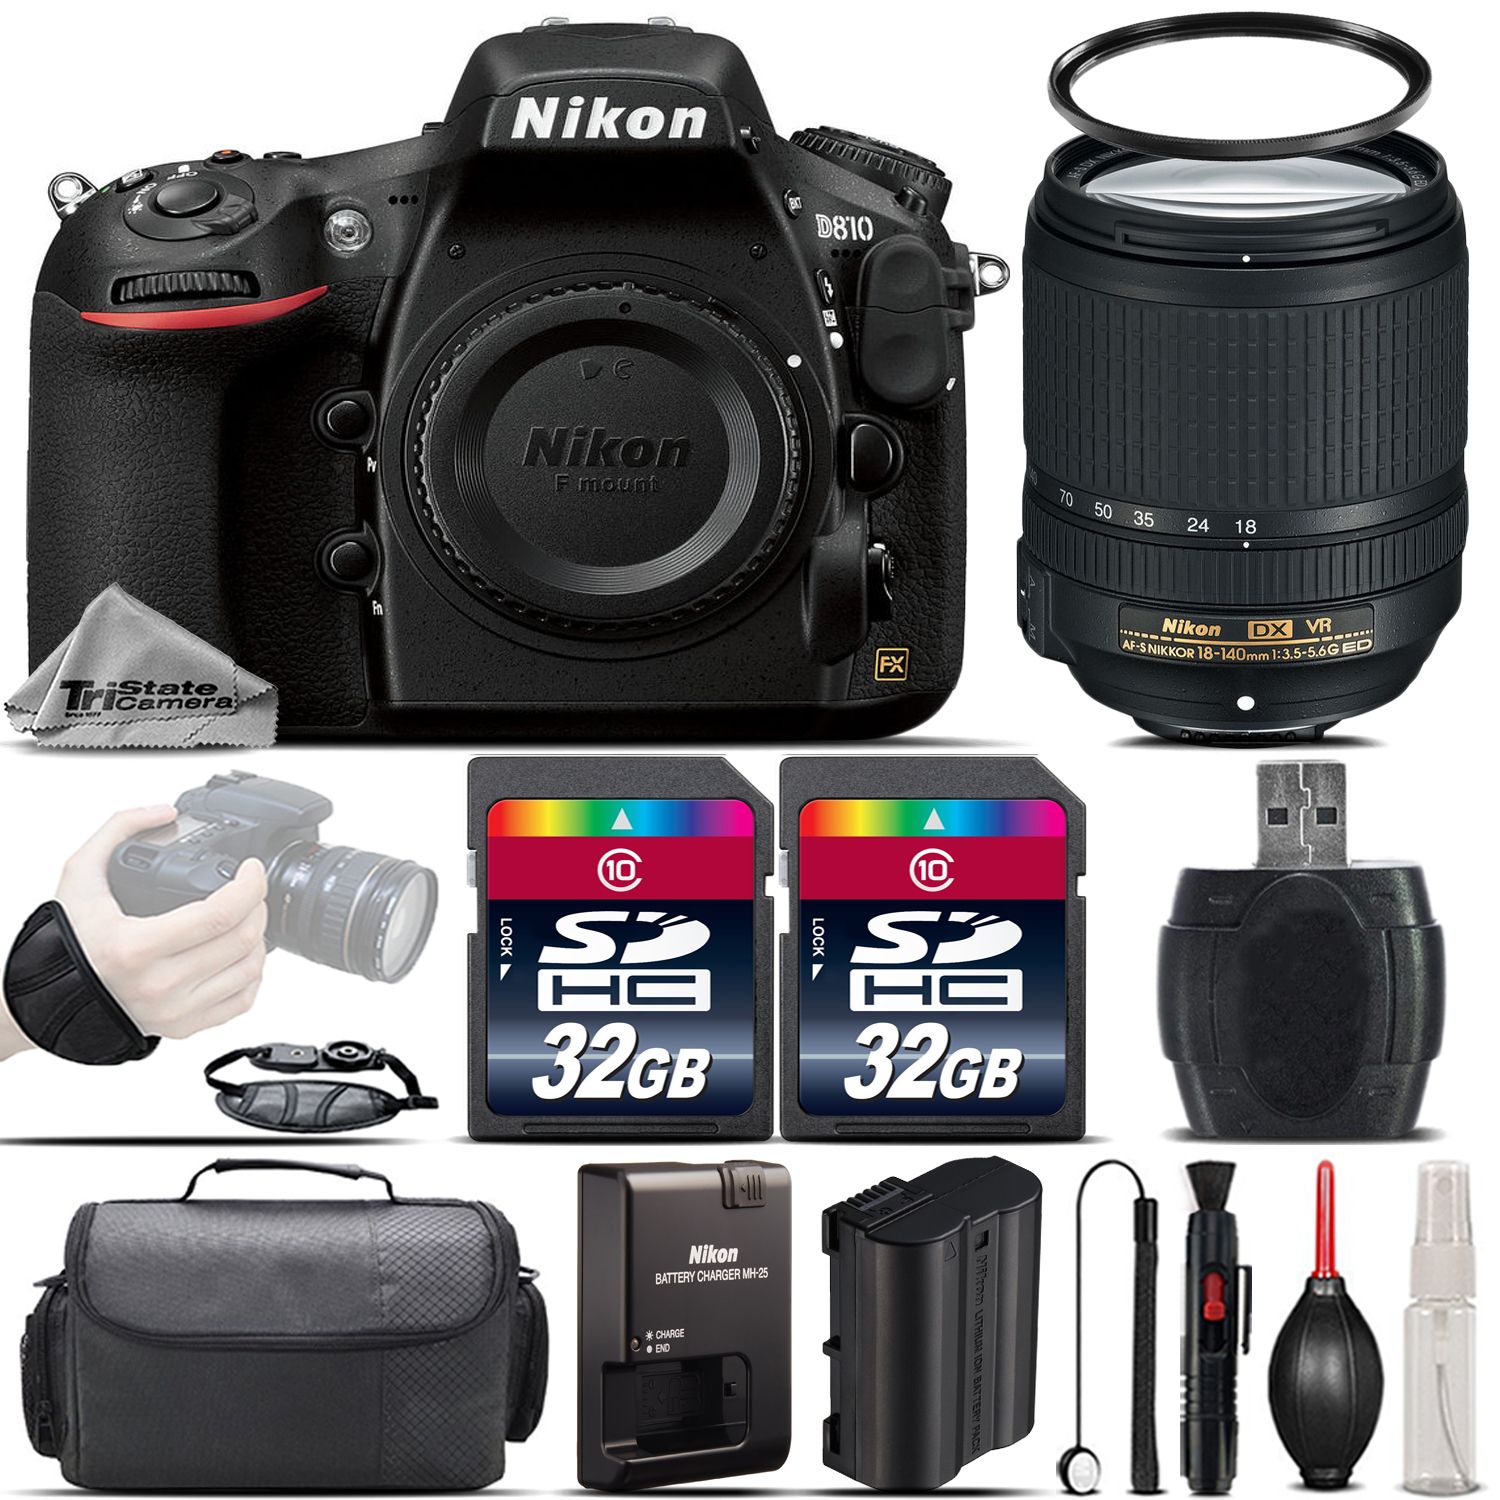 Nikon D810 DSLR 36.3MP FX Camera + Nikon 18-140mm VR Lens + Wrist Grip- 64GB Kit by Nikon